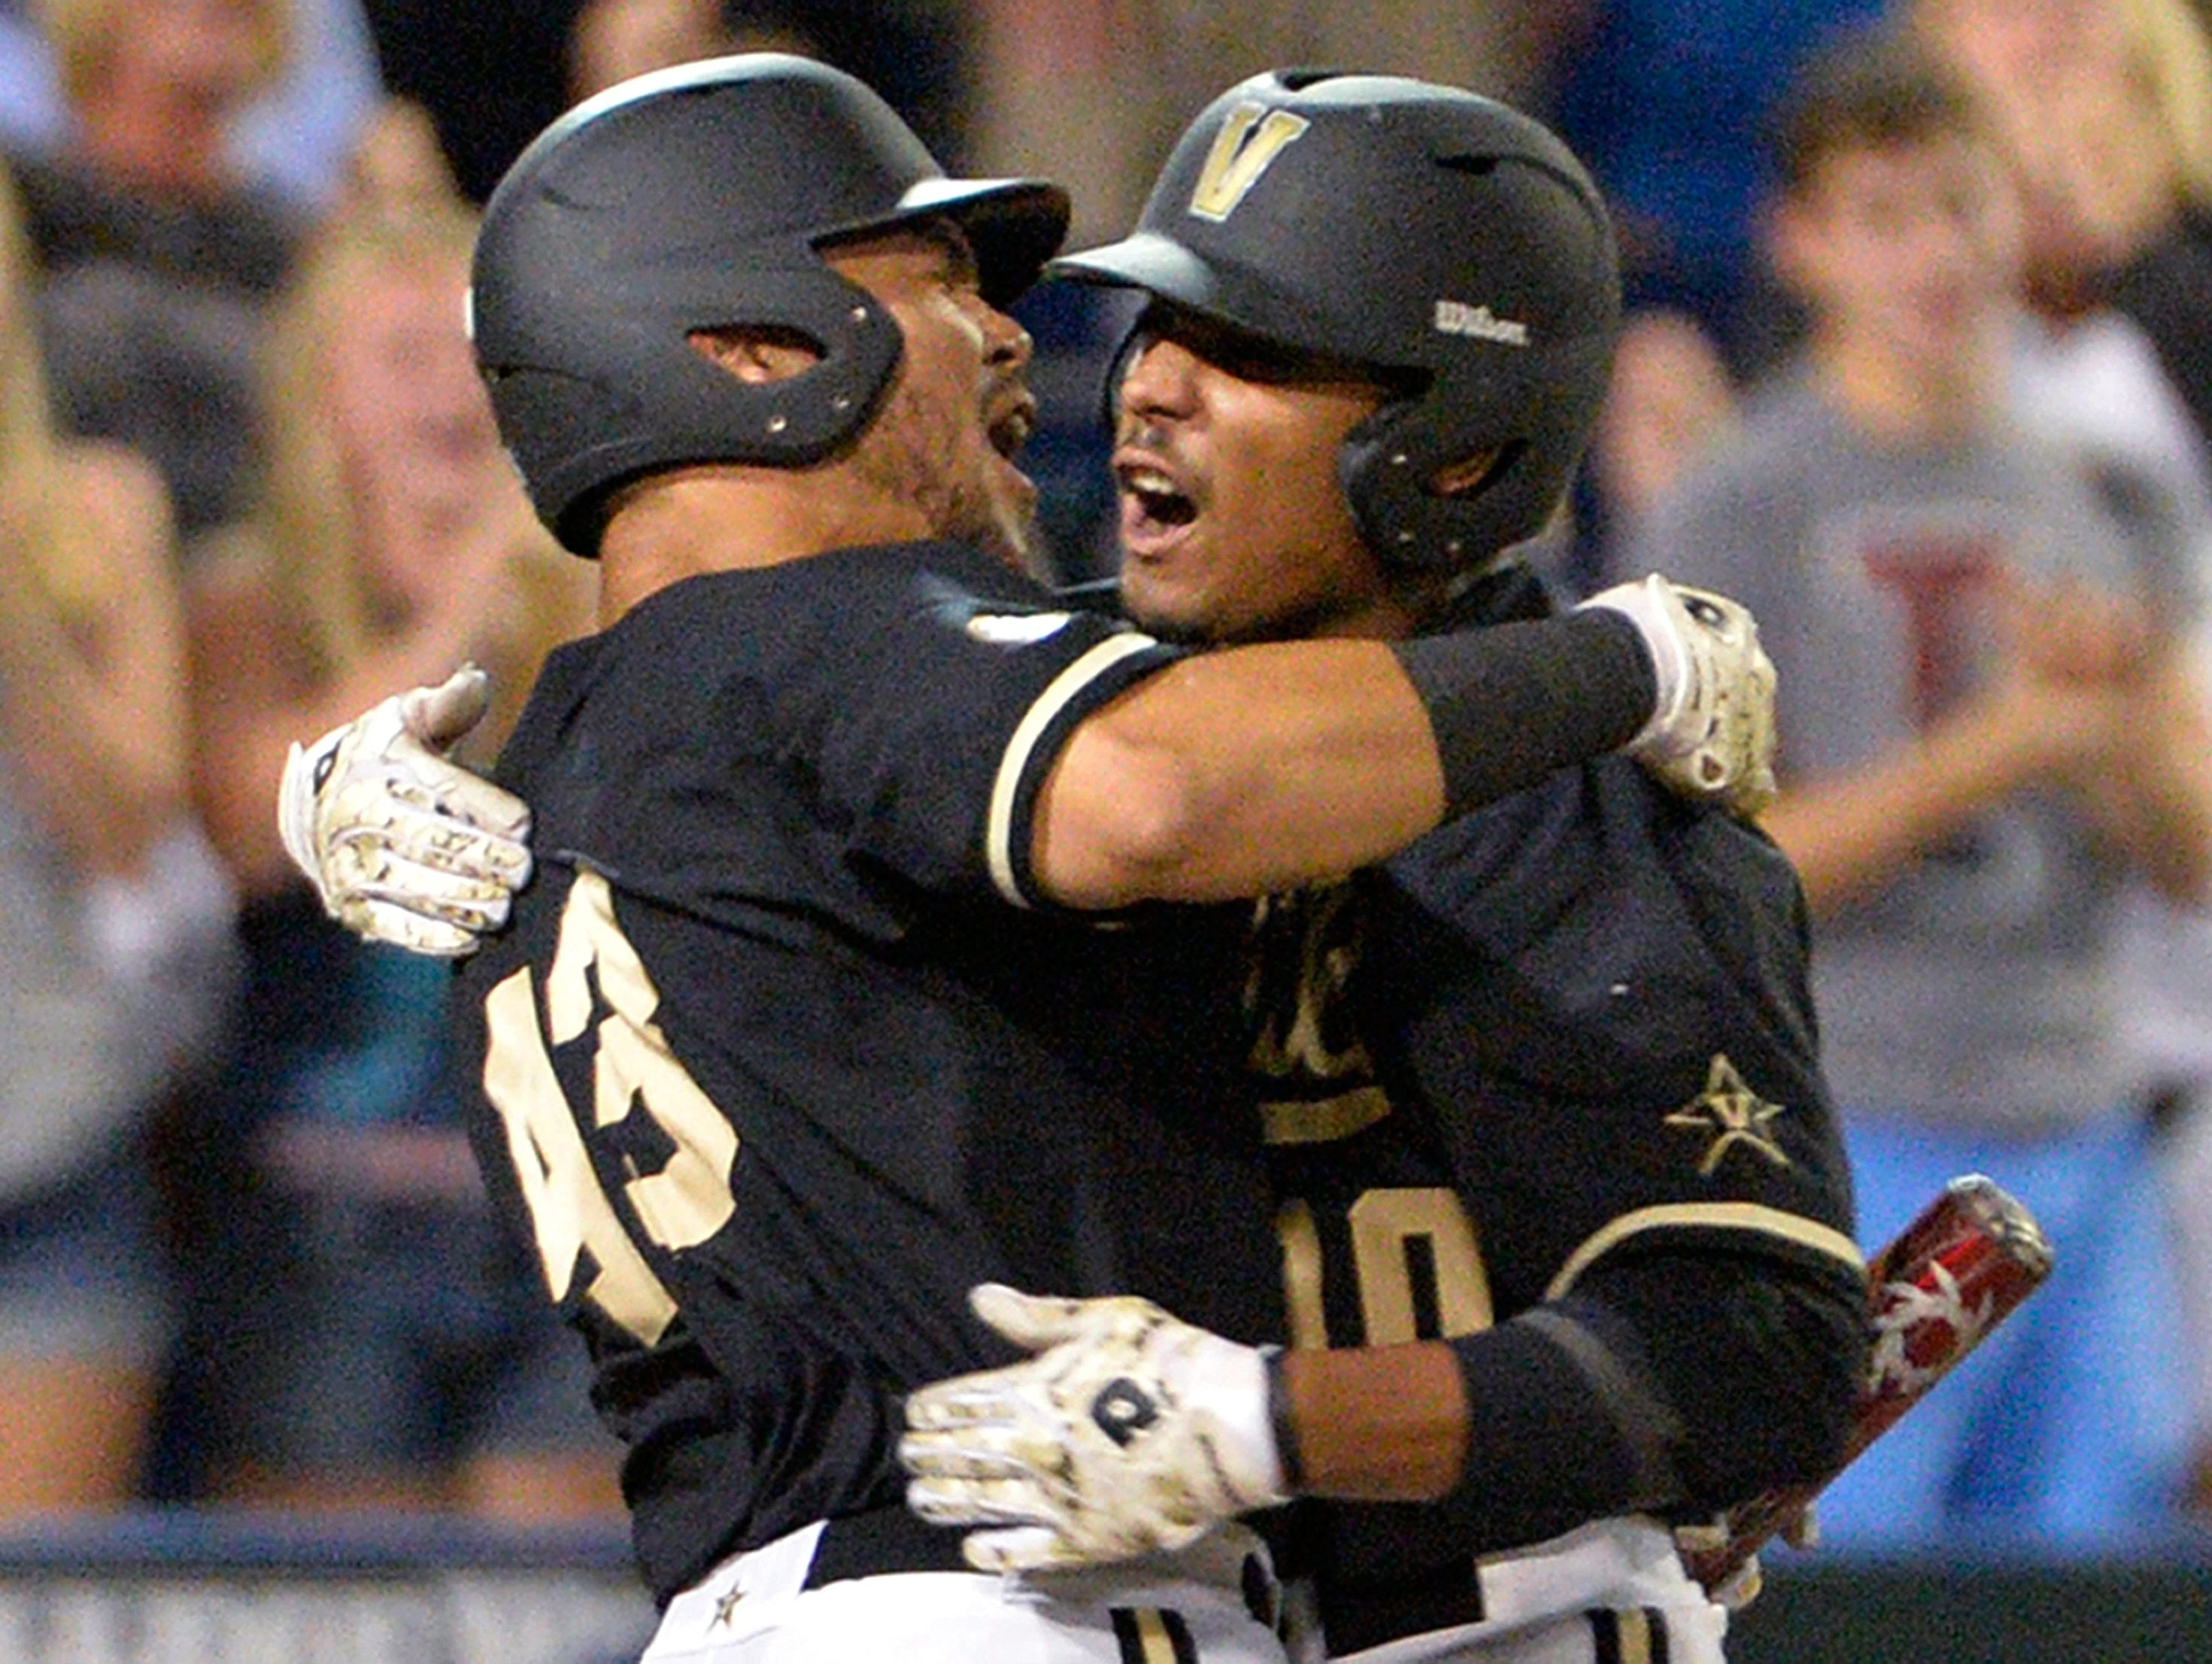 Vanderbilt's John Norwood, right, celebrates with Zander Wiel after hitting a home run against Virginia on Wednesday in Omaha, Neb. AP Vanderbilt's John Norwood, right, celebrates with Zander Wiel after hitting a home run against Virginia in the eighth inning of Game 3 of the best-of-three NCAA baseball College World Series finals in Omaha, Neb., Wednesday, June 25, 2014. (AP Photo/Ted Kirk)